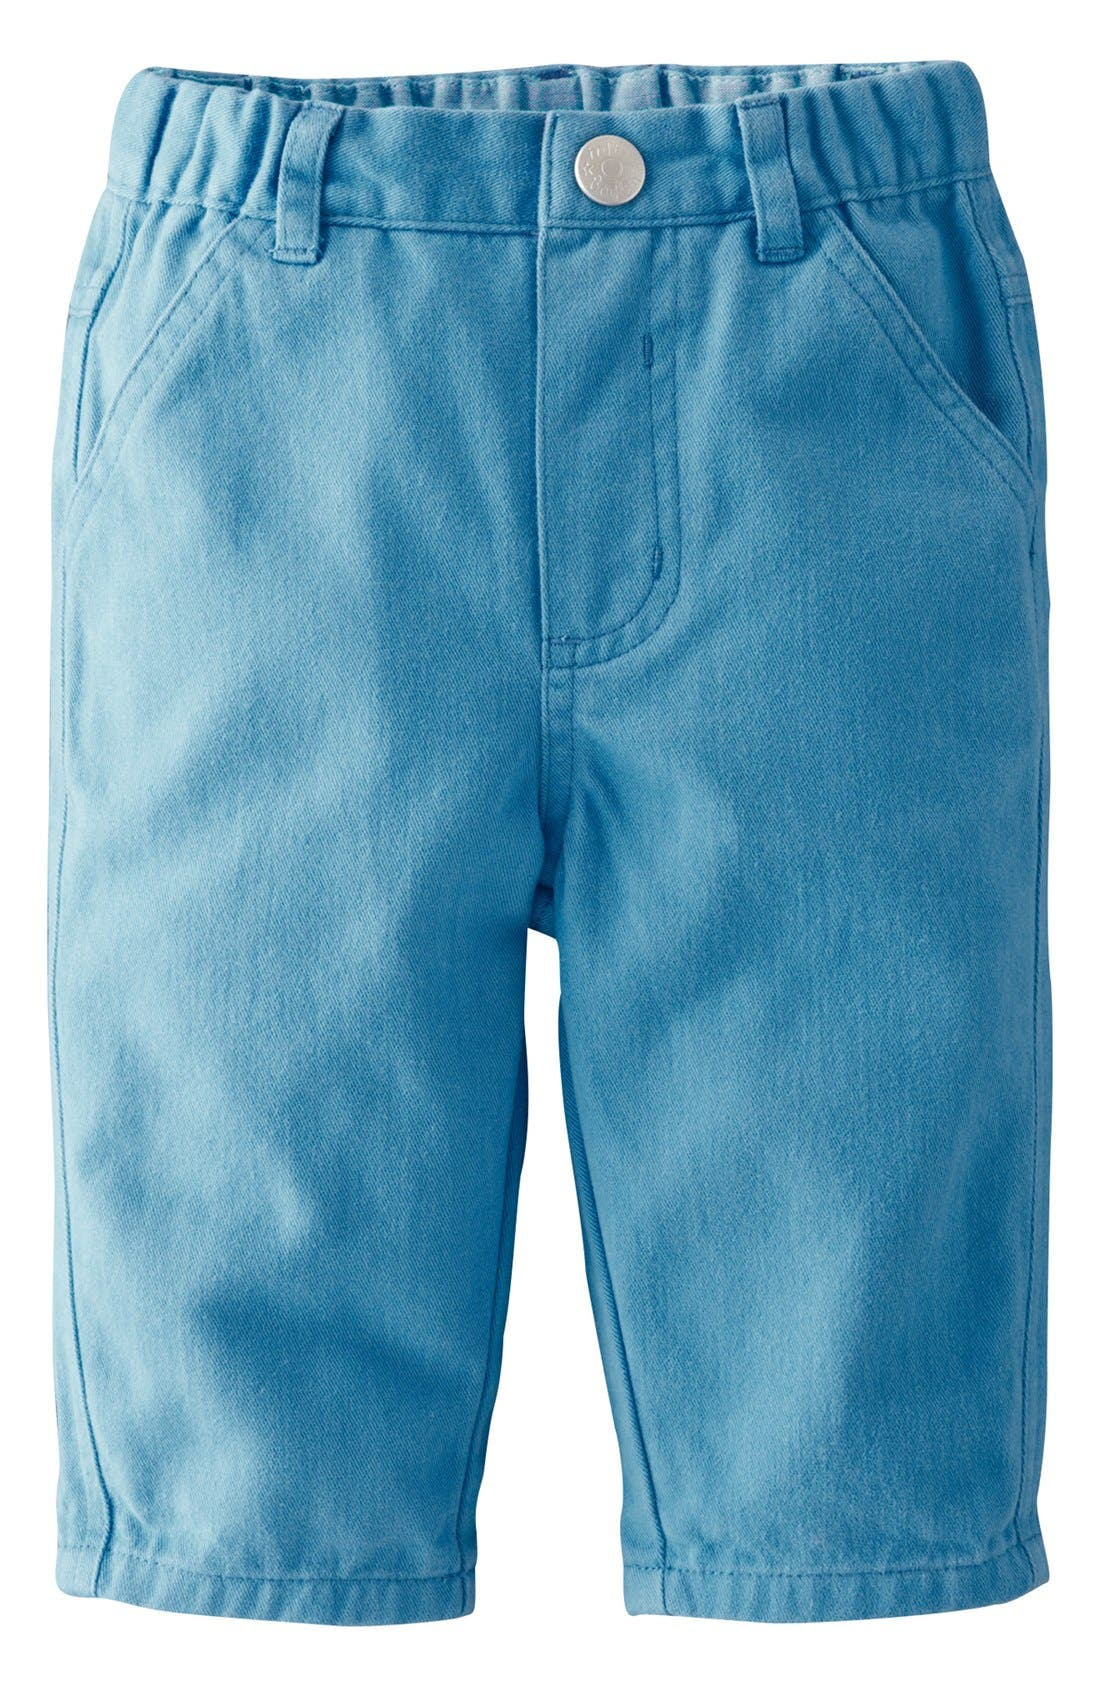 Alternate Image 1 Selected - Mini Boden Chinos (Baby Boys)